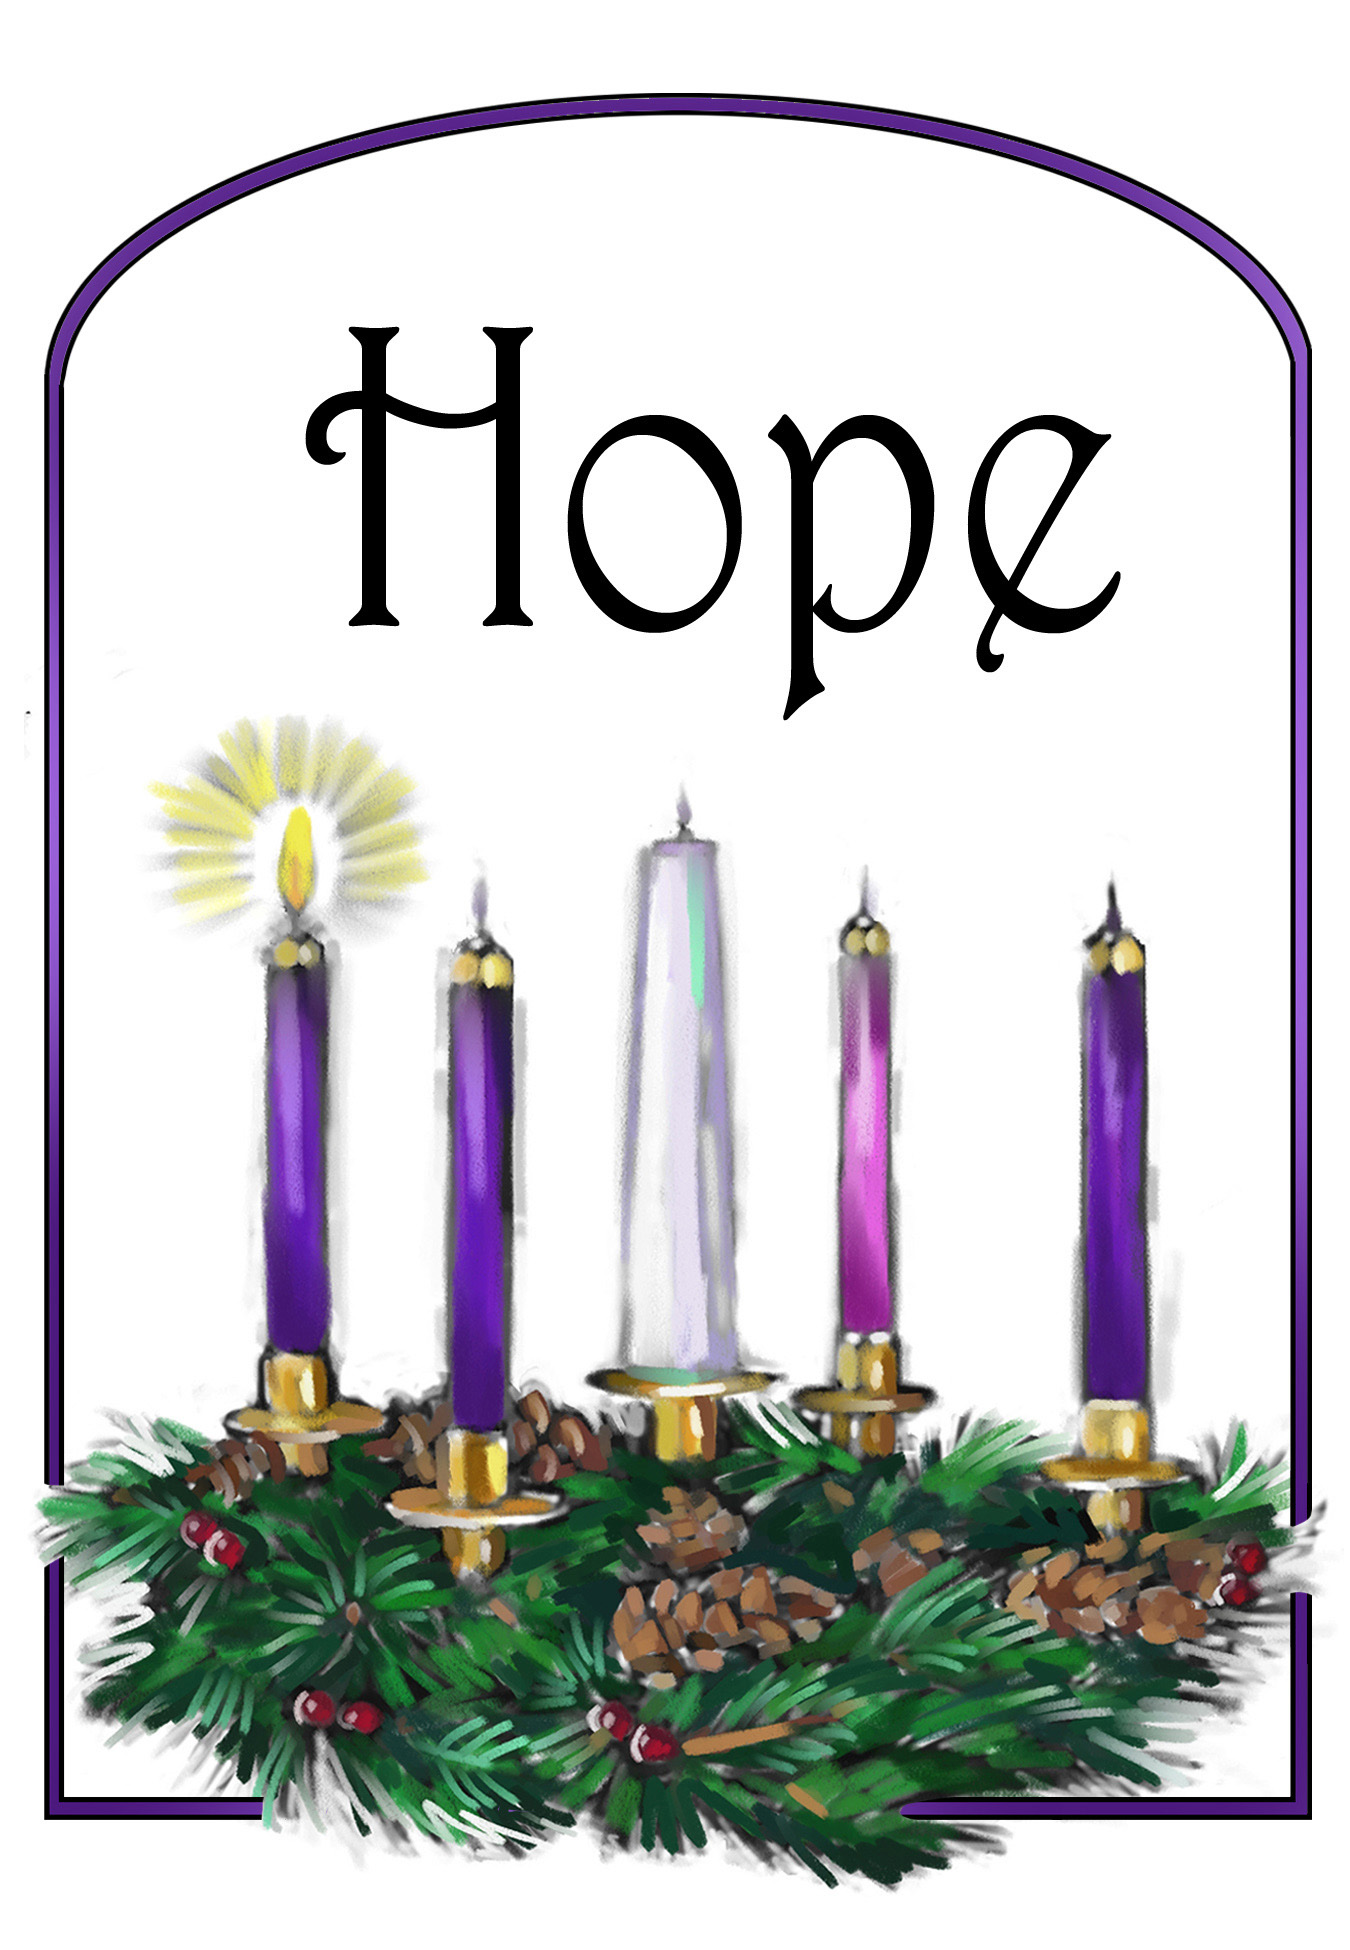 1 Advent Bilder Kostenlos Gif Free Advent 1 Cliparts Download Free Clip Art Free Clip Art On